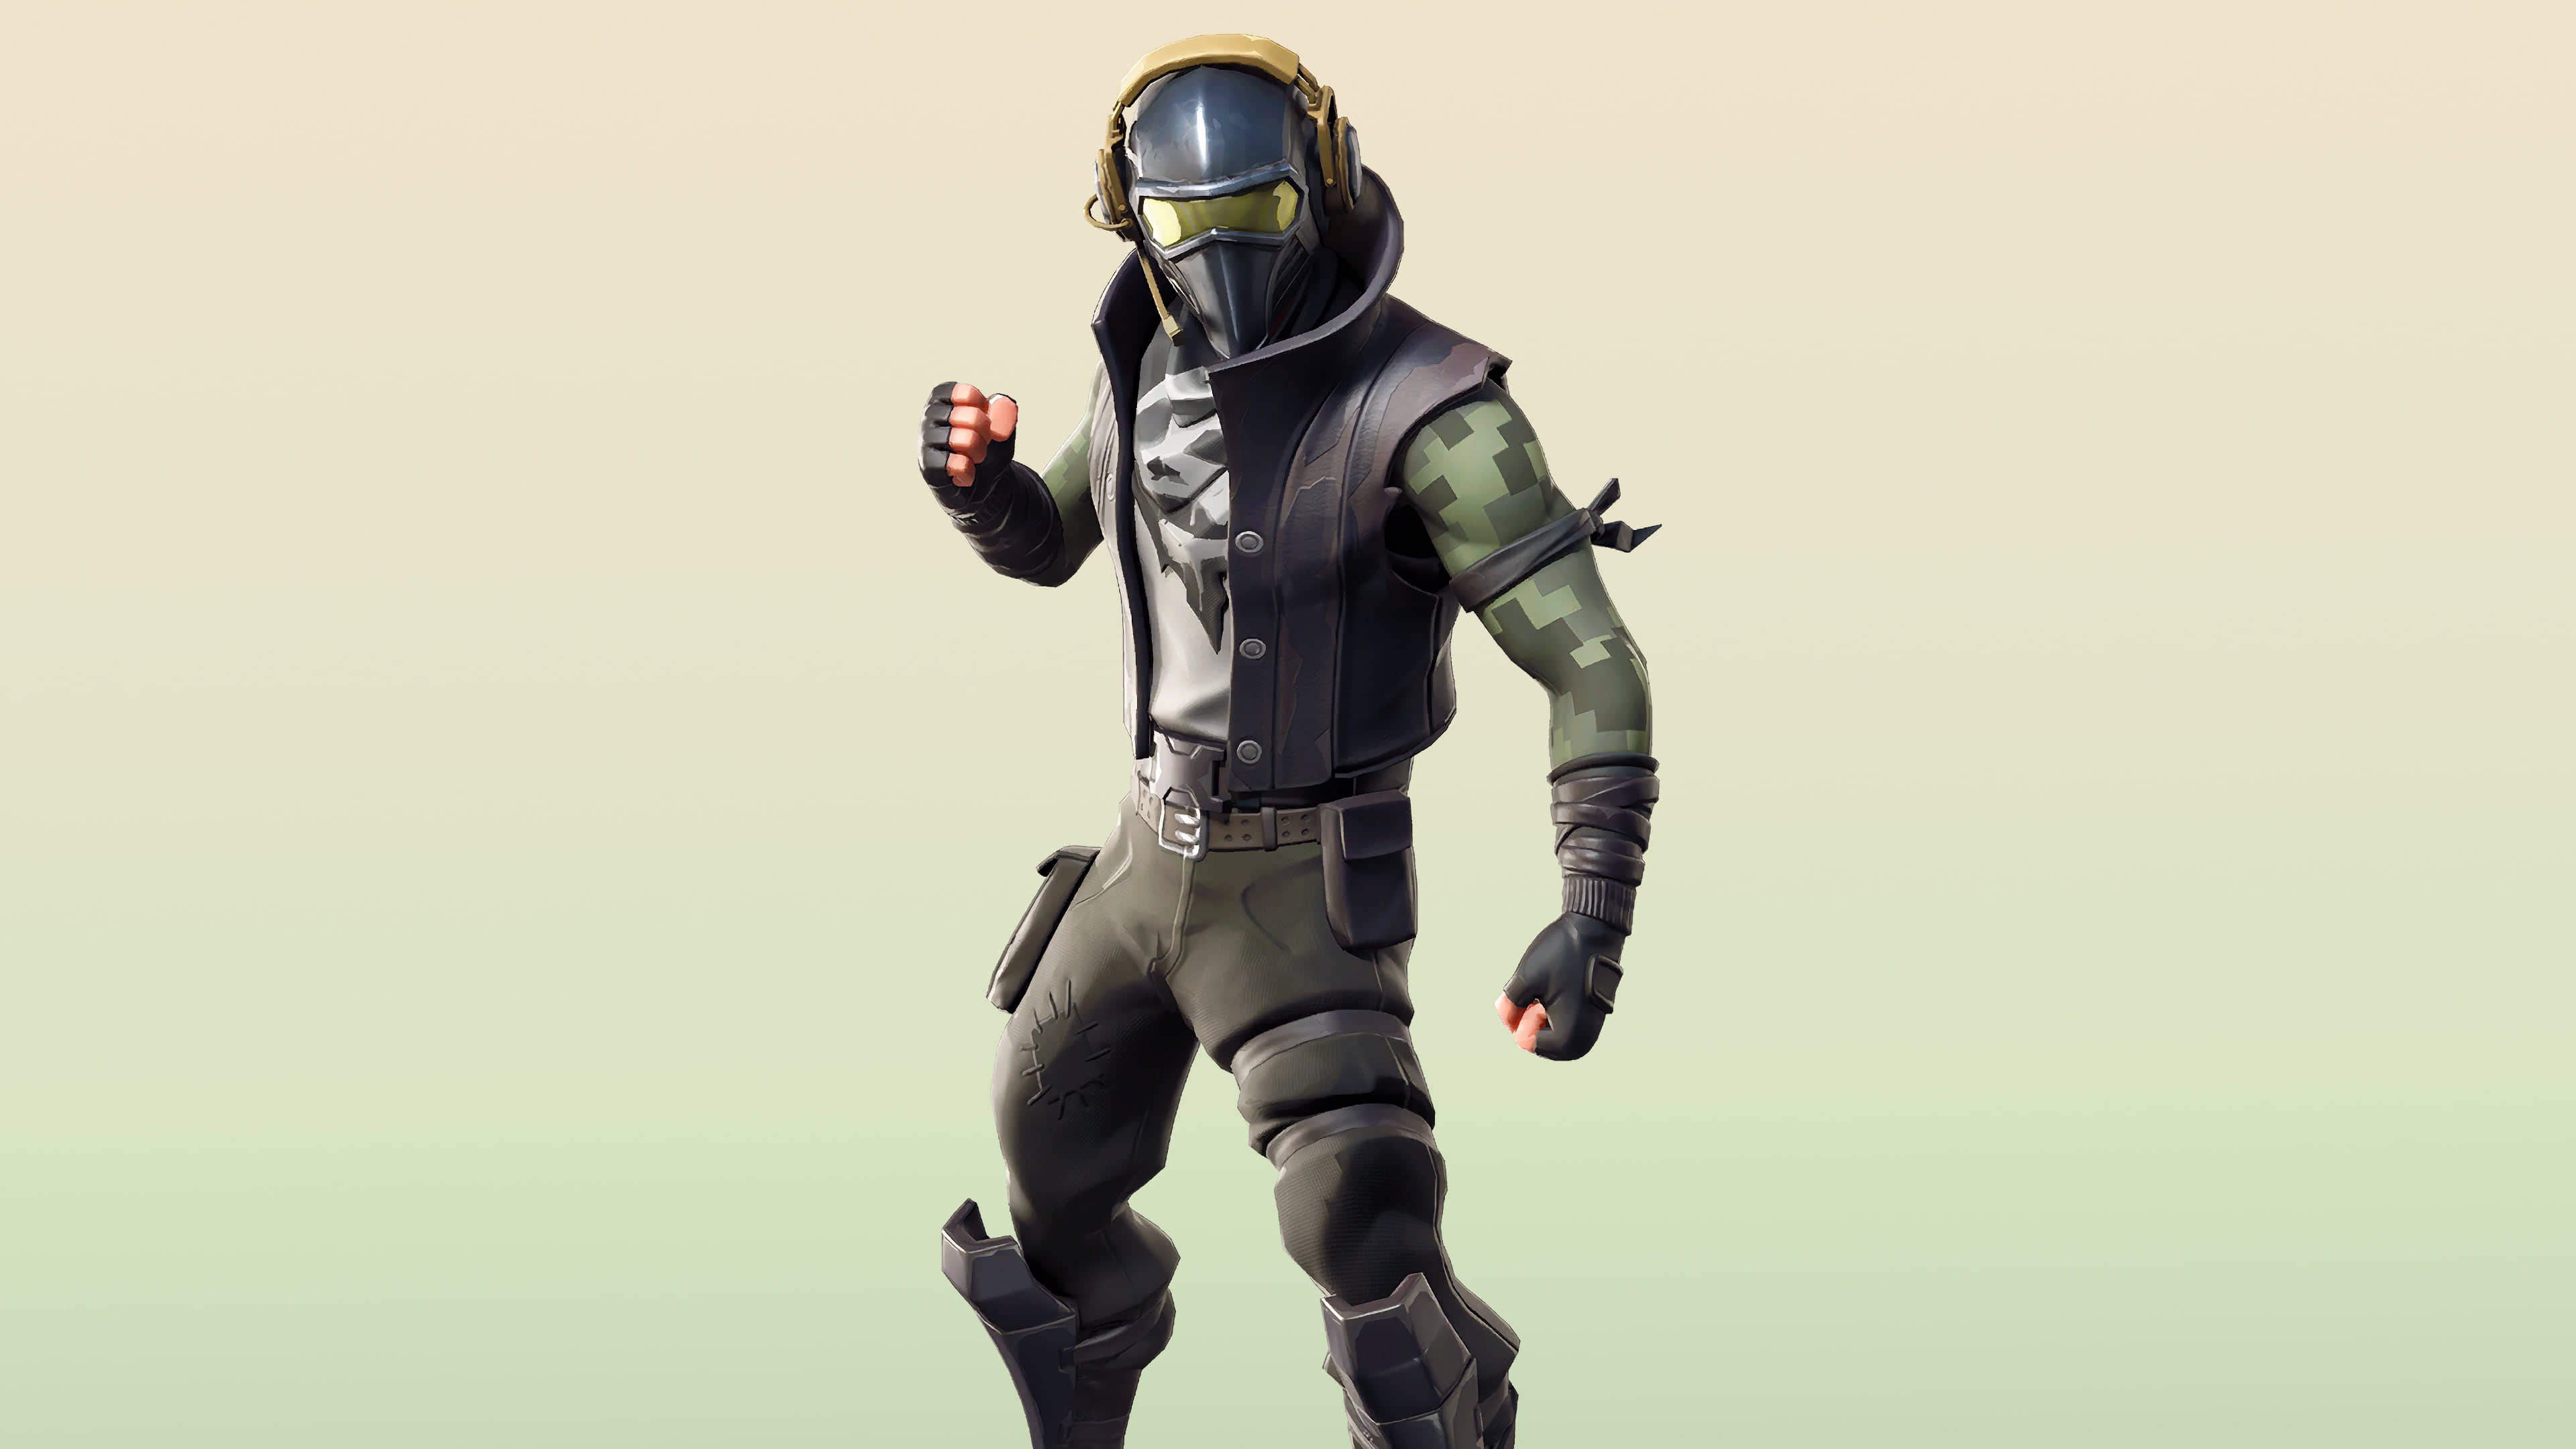 fortnite grit skin outfit uhd 4k wallpaper